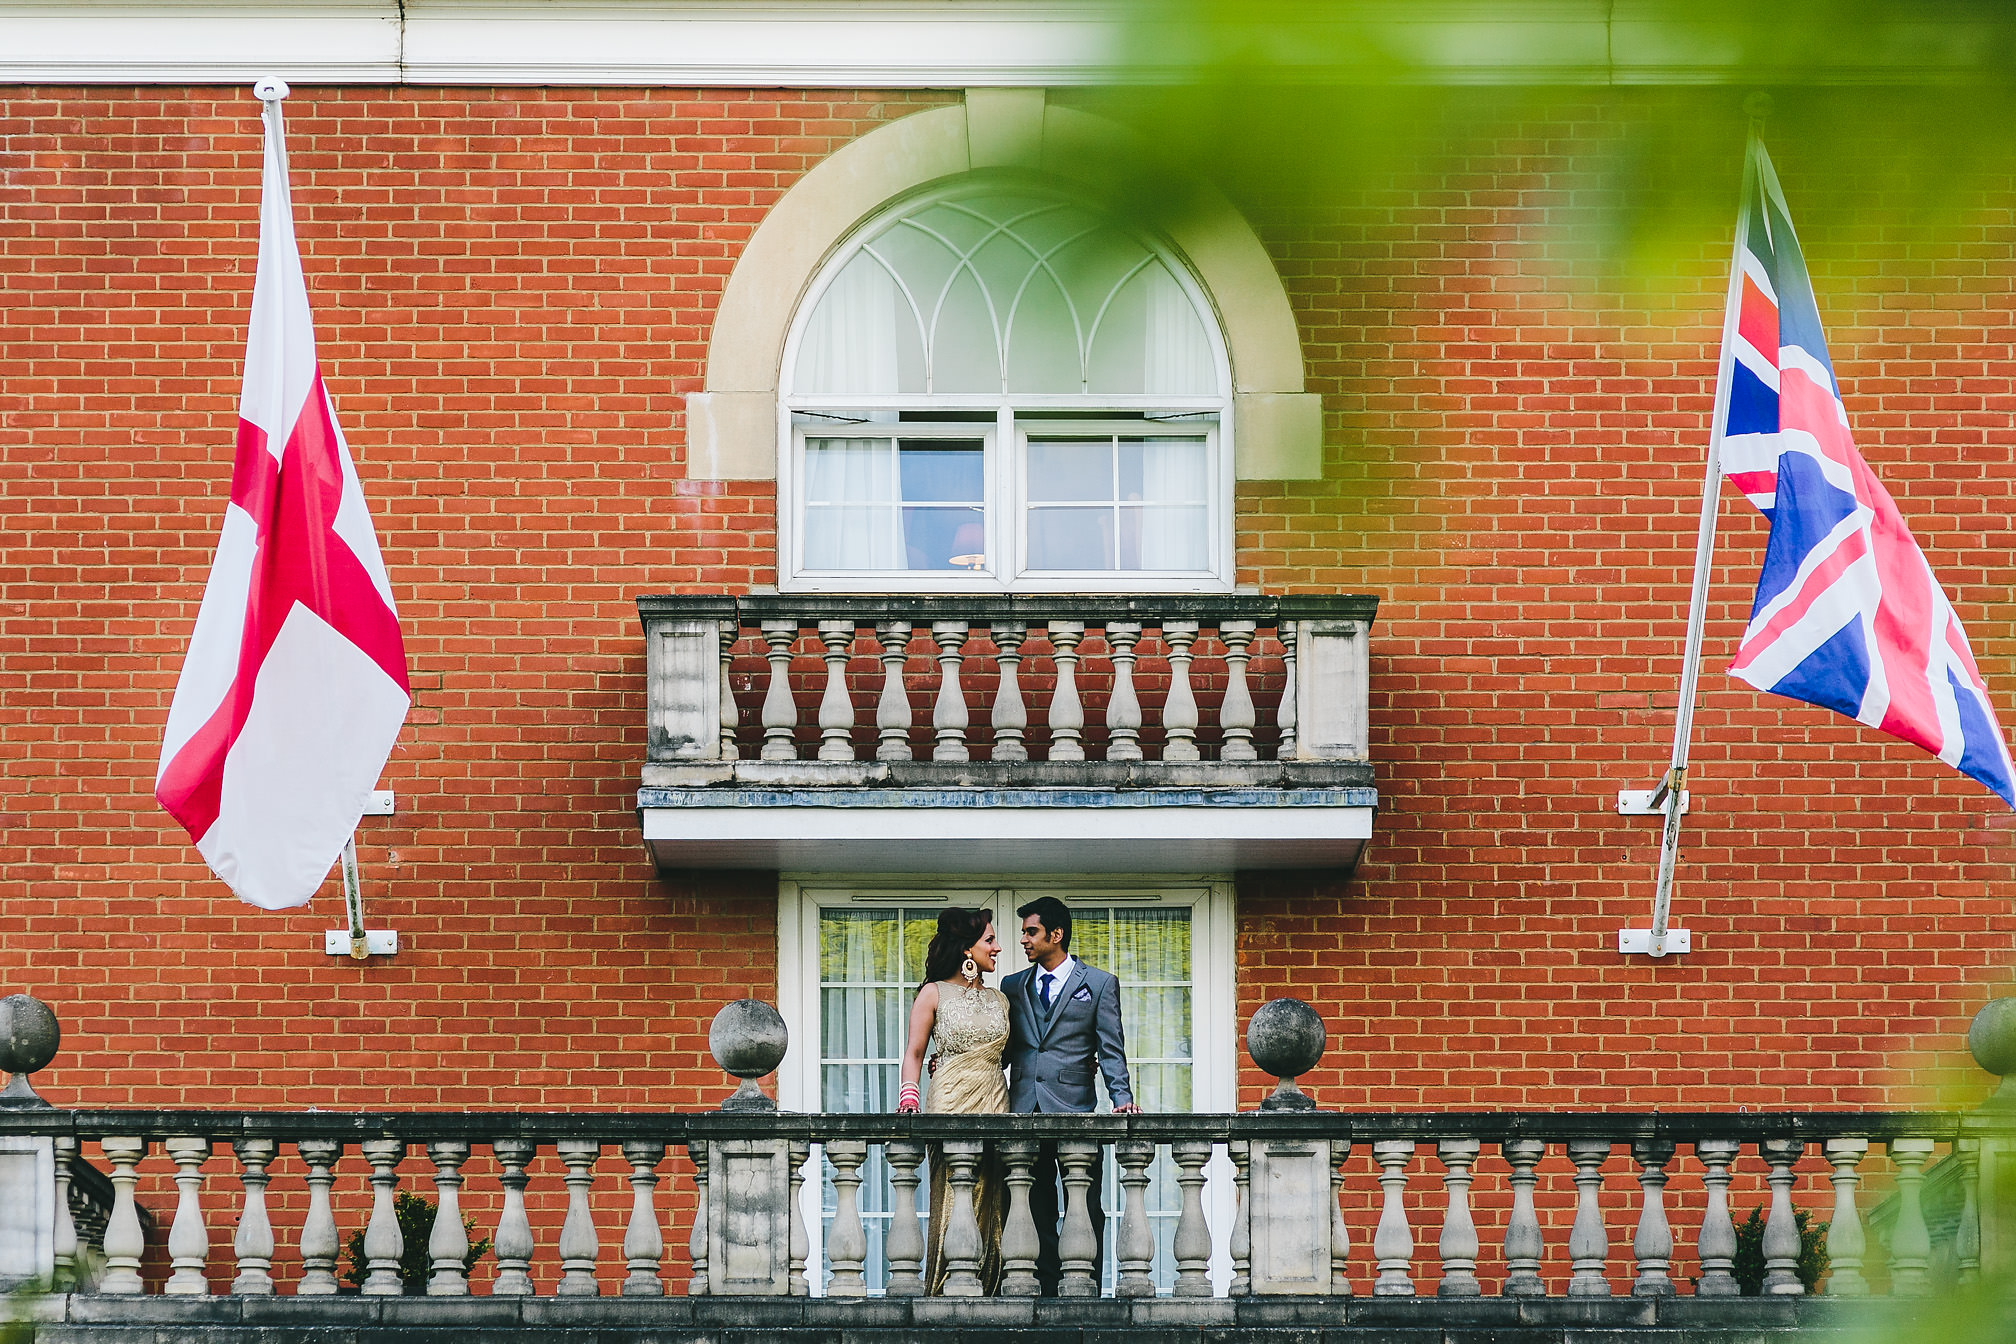 Couple on a balcony